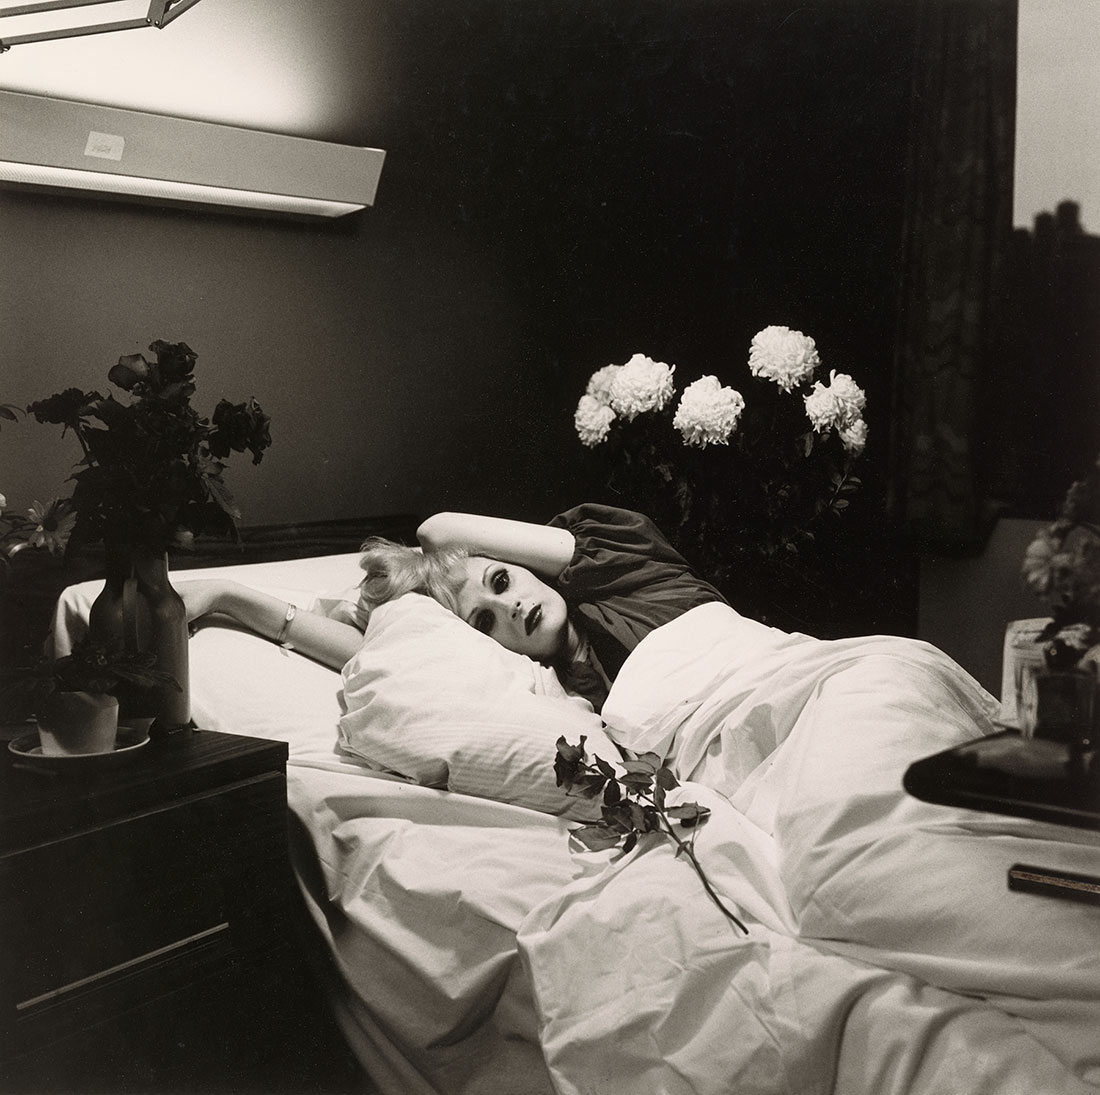 Candy Darling on her Deathbed<br />1973<br />Peter Hujar<br />Tirage gélatino-argentique, Collection of Ronay and Richard Menschel<br />© Peter Hujar Archive, LLC, courtesy Pace/MacGill Gallery, New York and Fraenkel Gallery, San Francisco